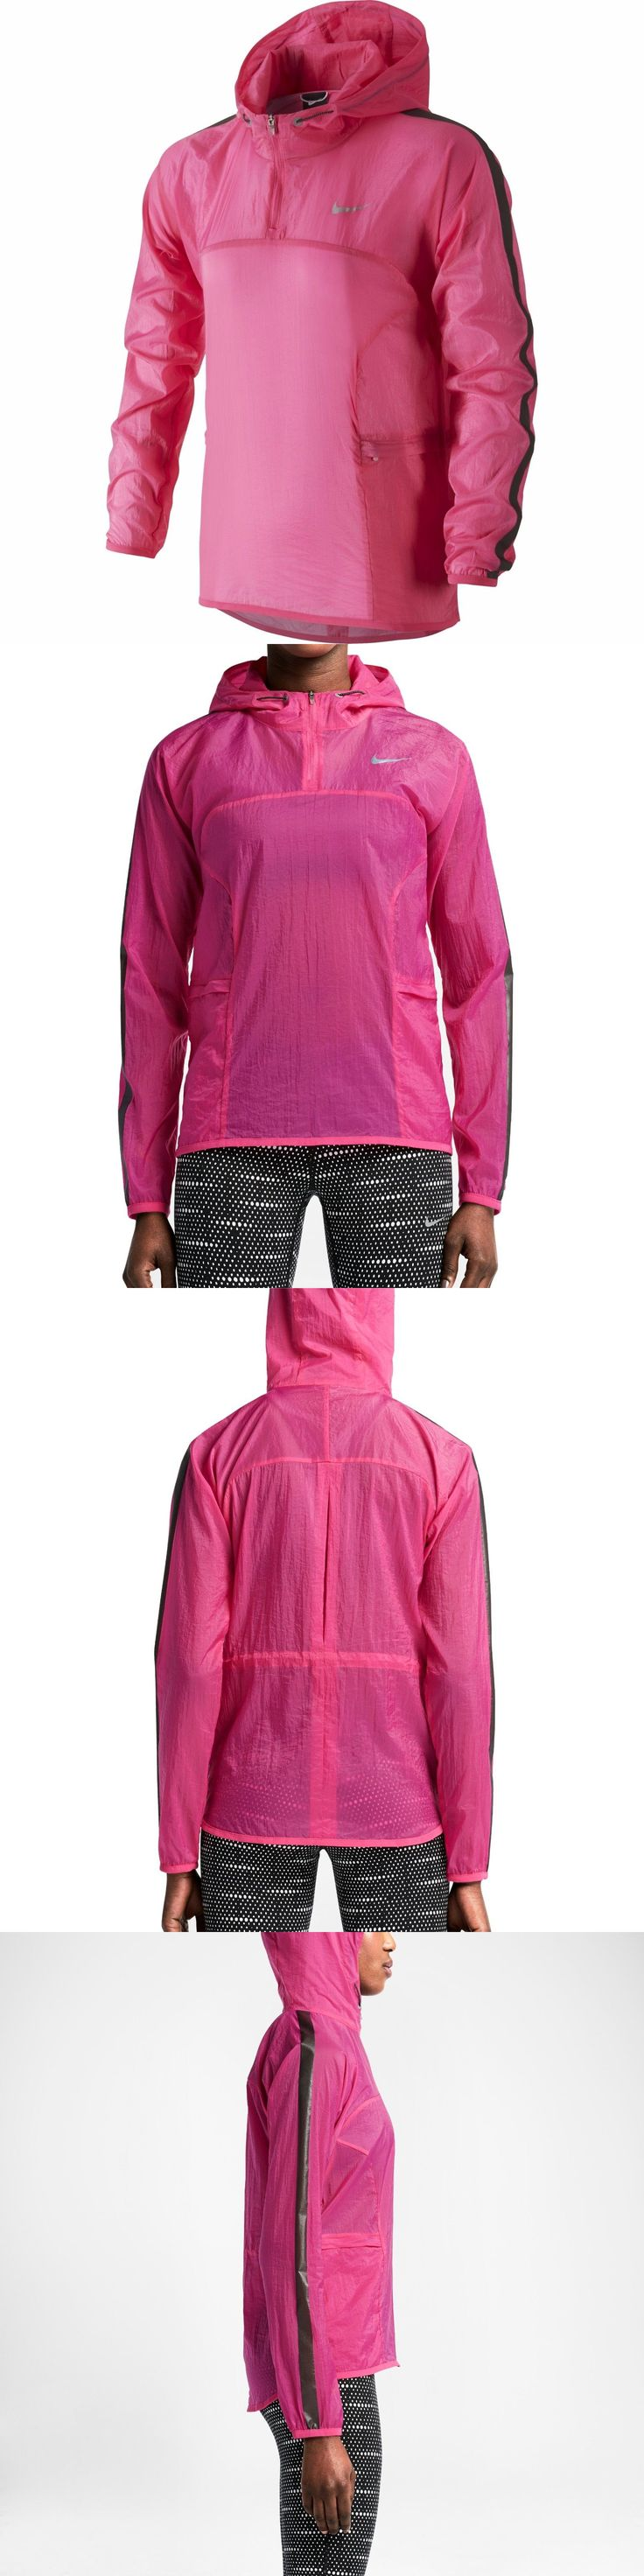 Jackets and Vests 59285: Nike Transparent Woven Women S Running Jacket $130 -> BUY IT NOW ONLY: $69.95 on eBay!